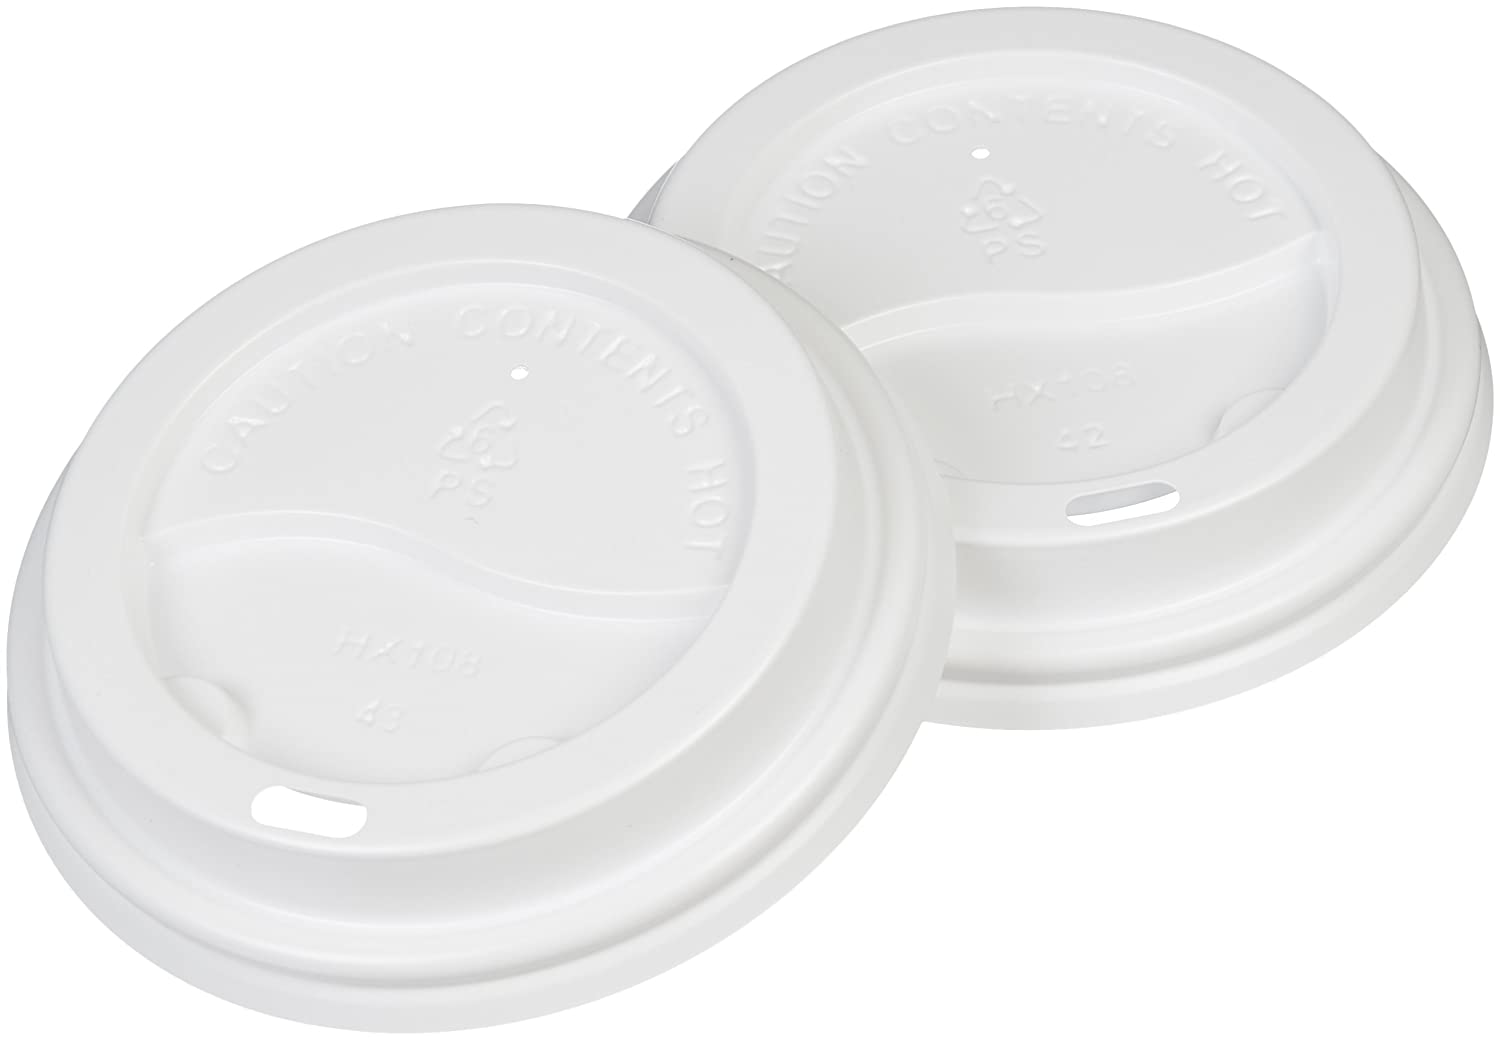 AmazonBasics Cup Lid forPaper Cups, 500-Count